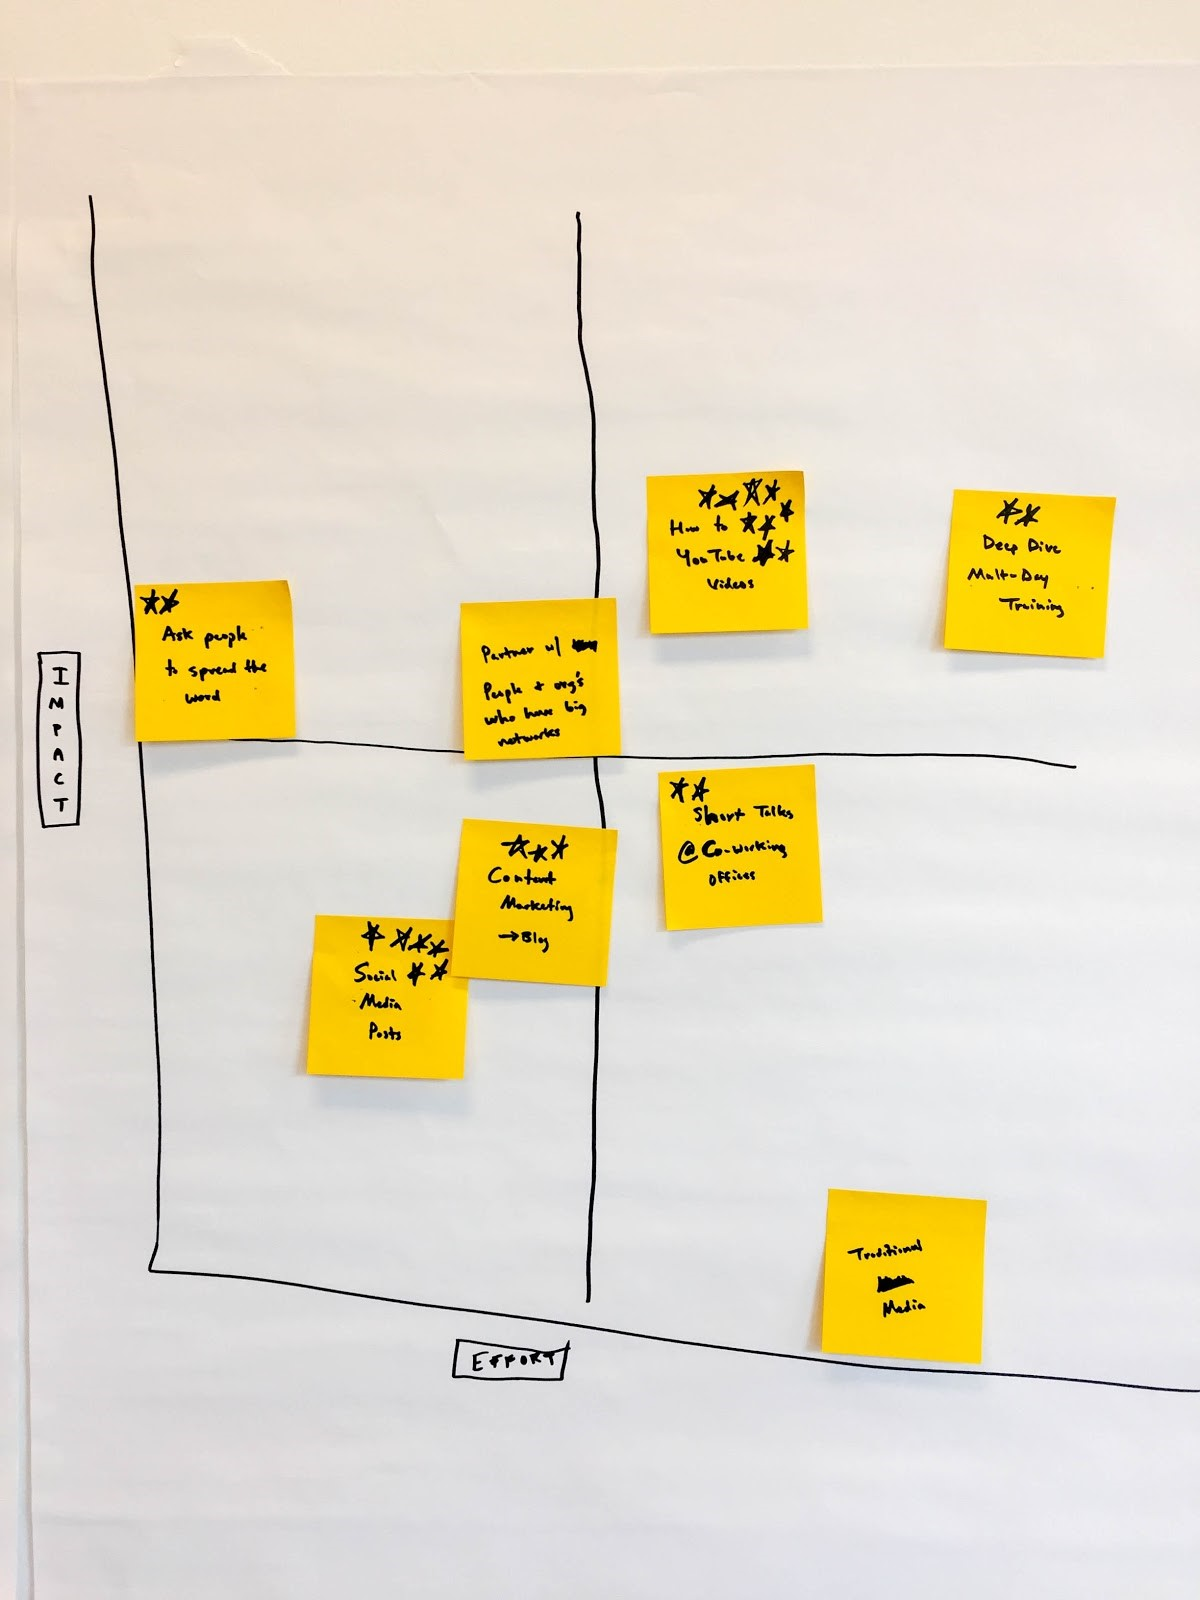 For illustration, we mapped all of our ideas (we were moving fast and stopped after just eight). But we suggest you only map and evaluate your top voted ideas (those that got one or more votes) as a way to narrow down the pool of ideas to a more manageable level.